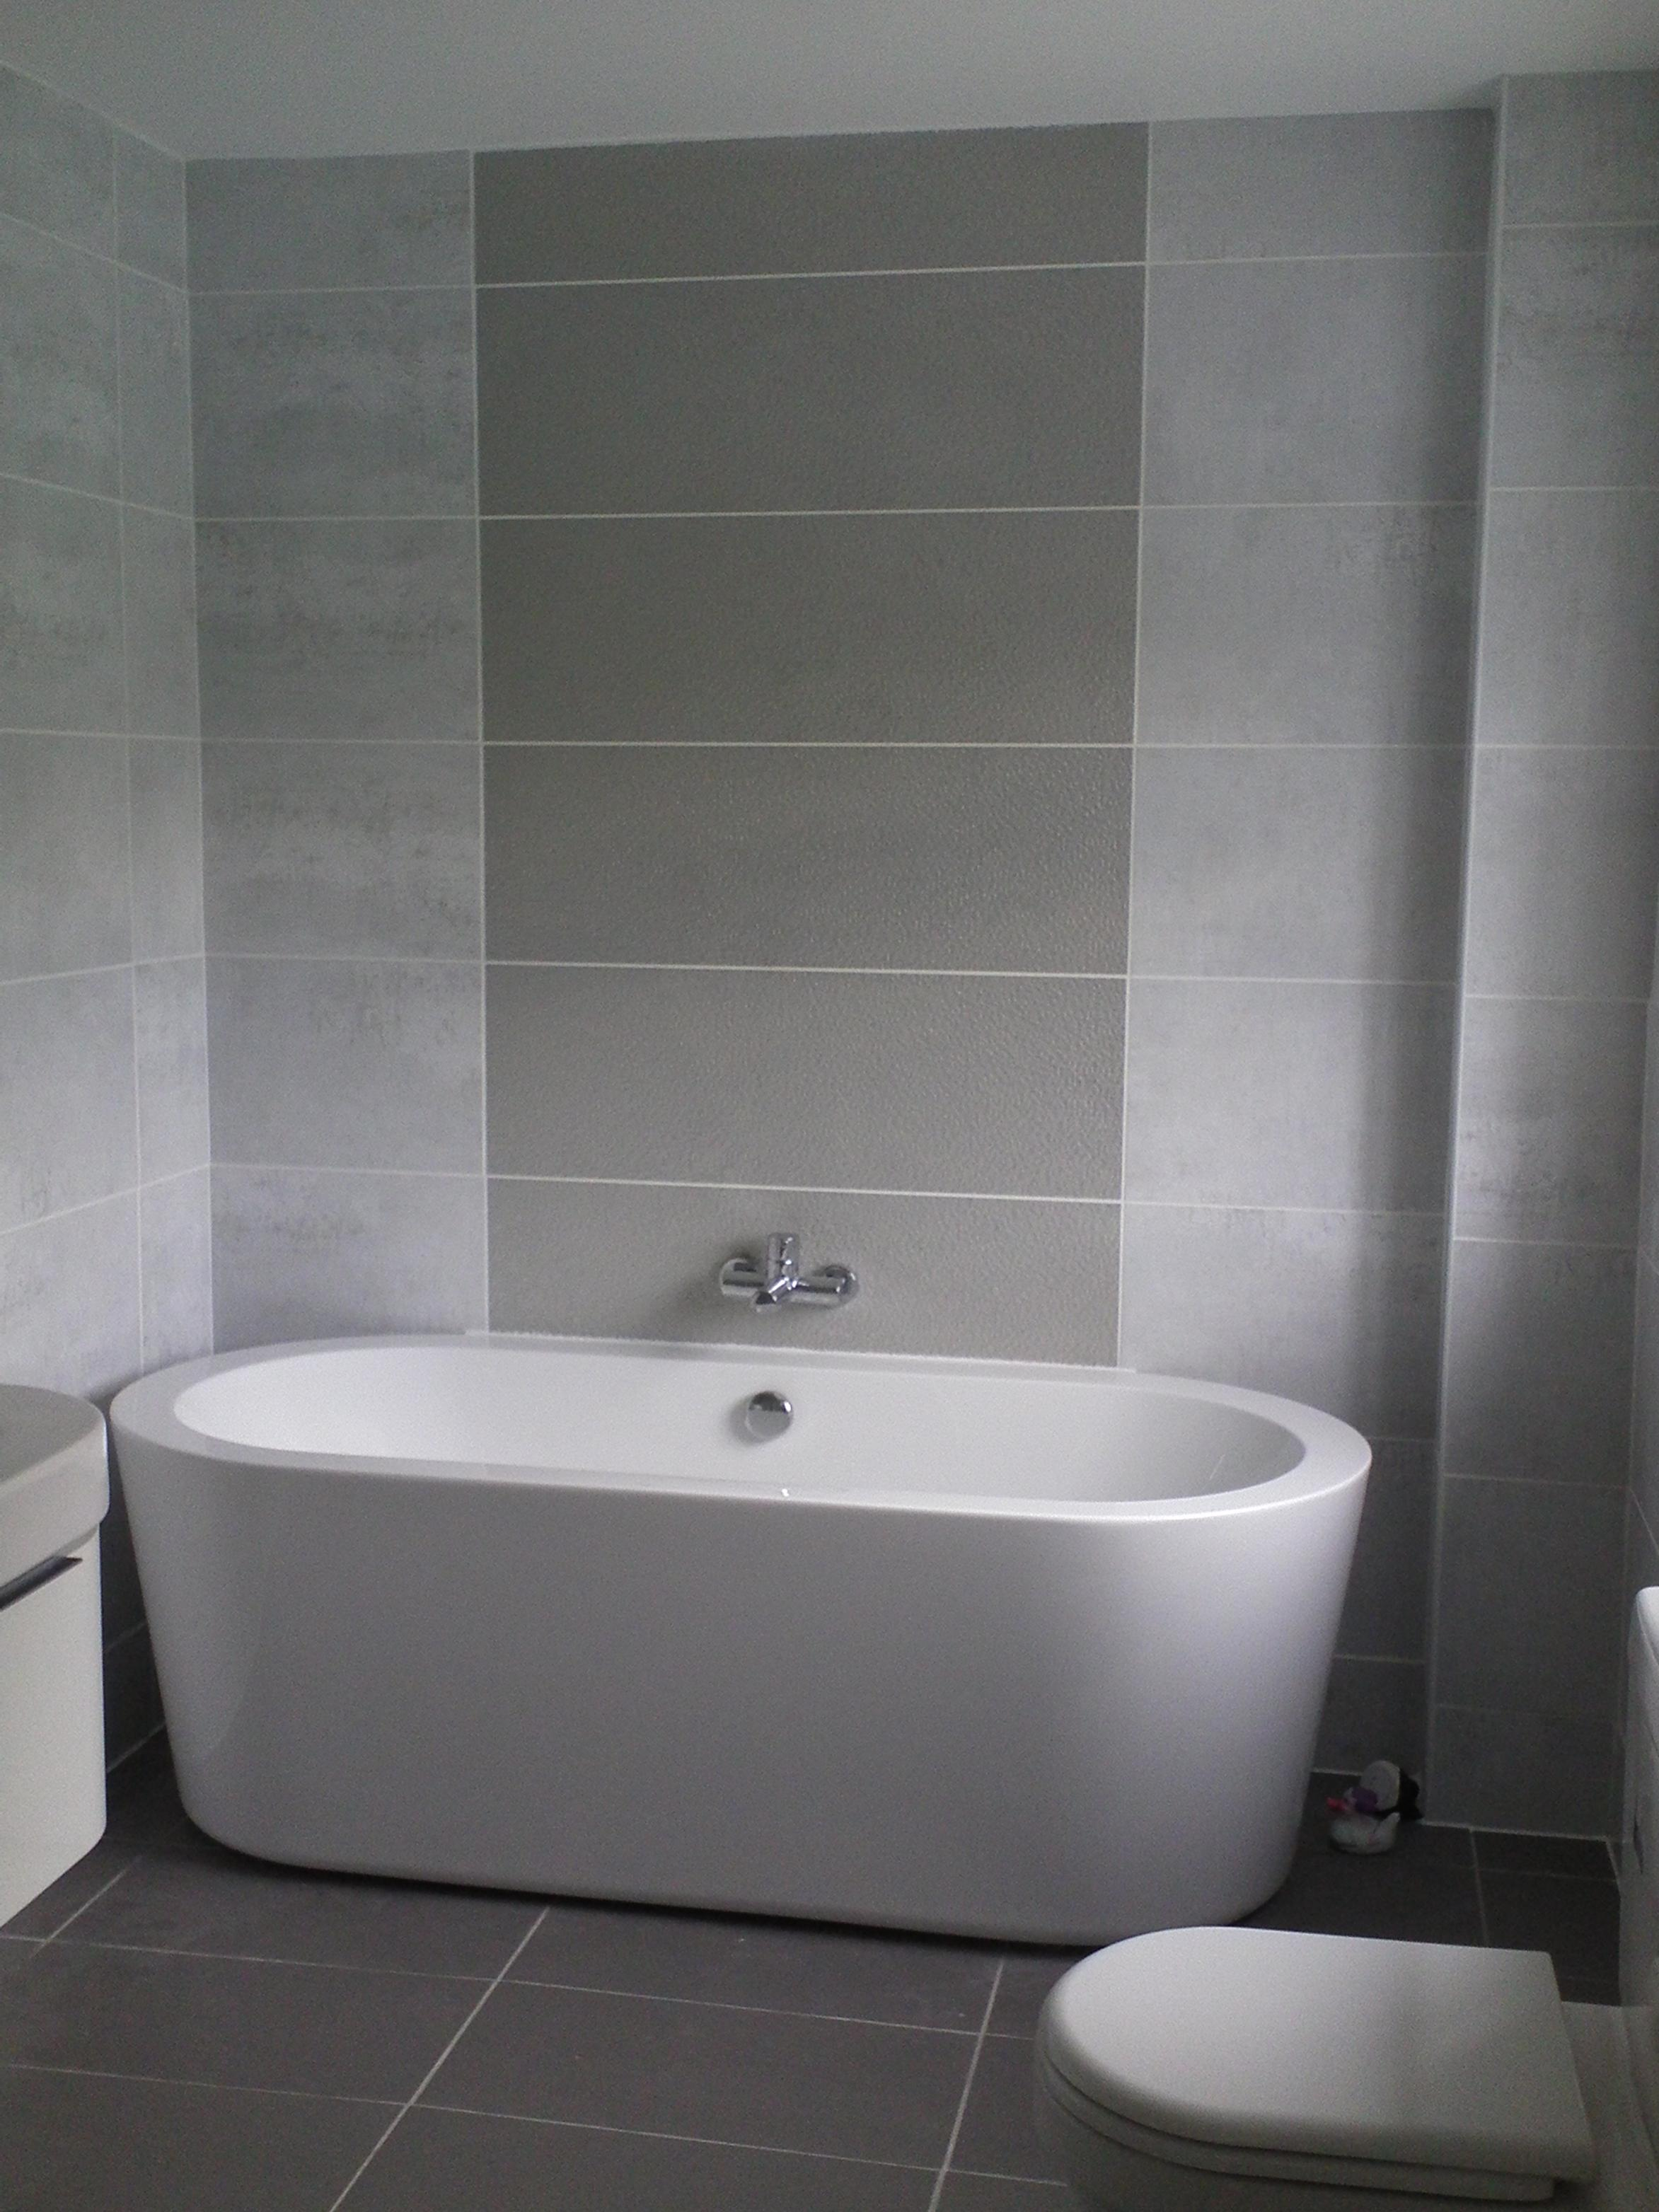 Bathroom Tile Ideas Grey And White